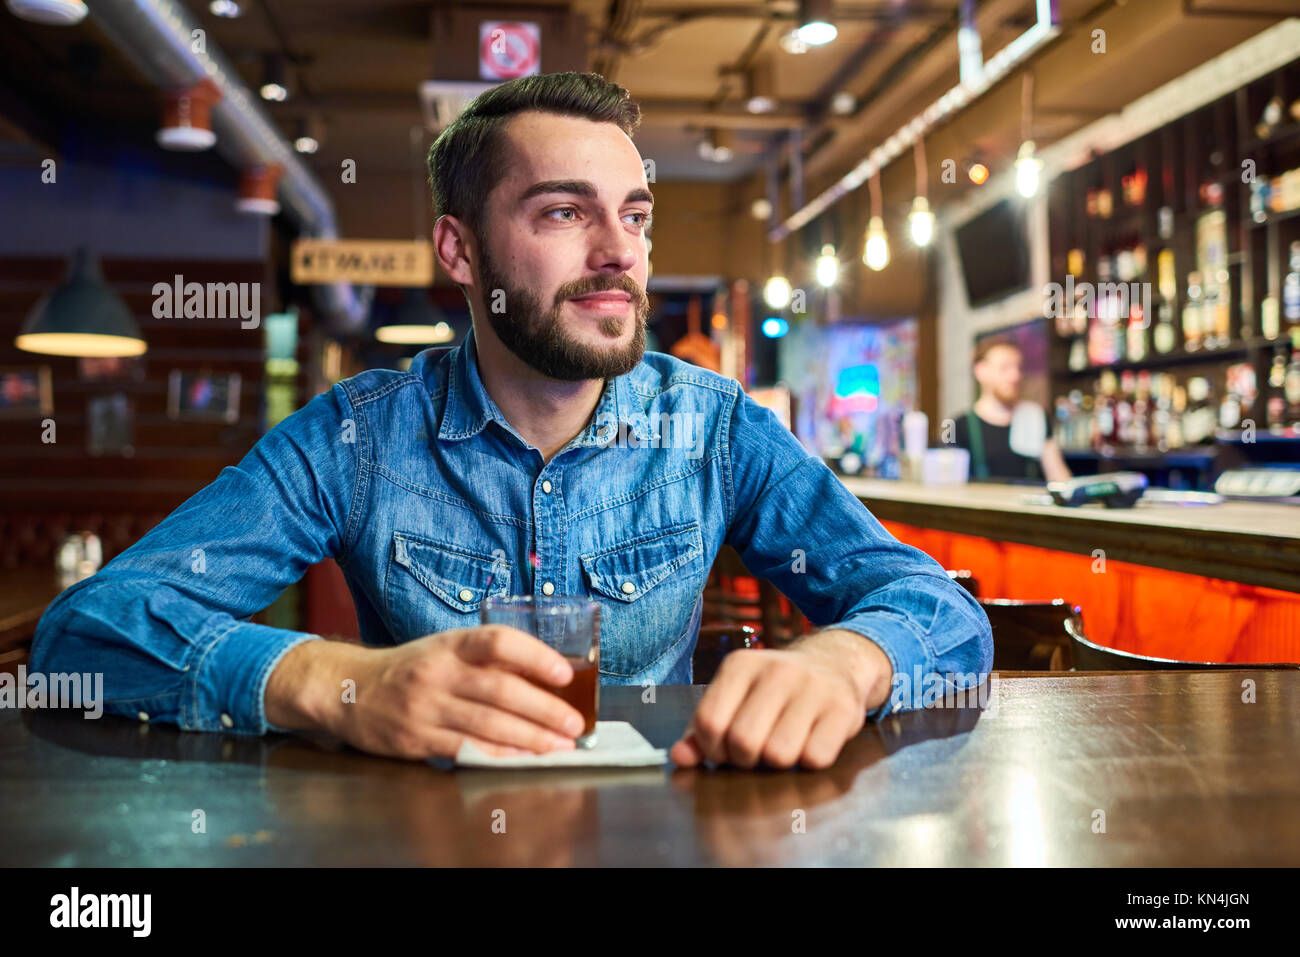 Happy Drunk Man in Bar - Stock Image